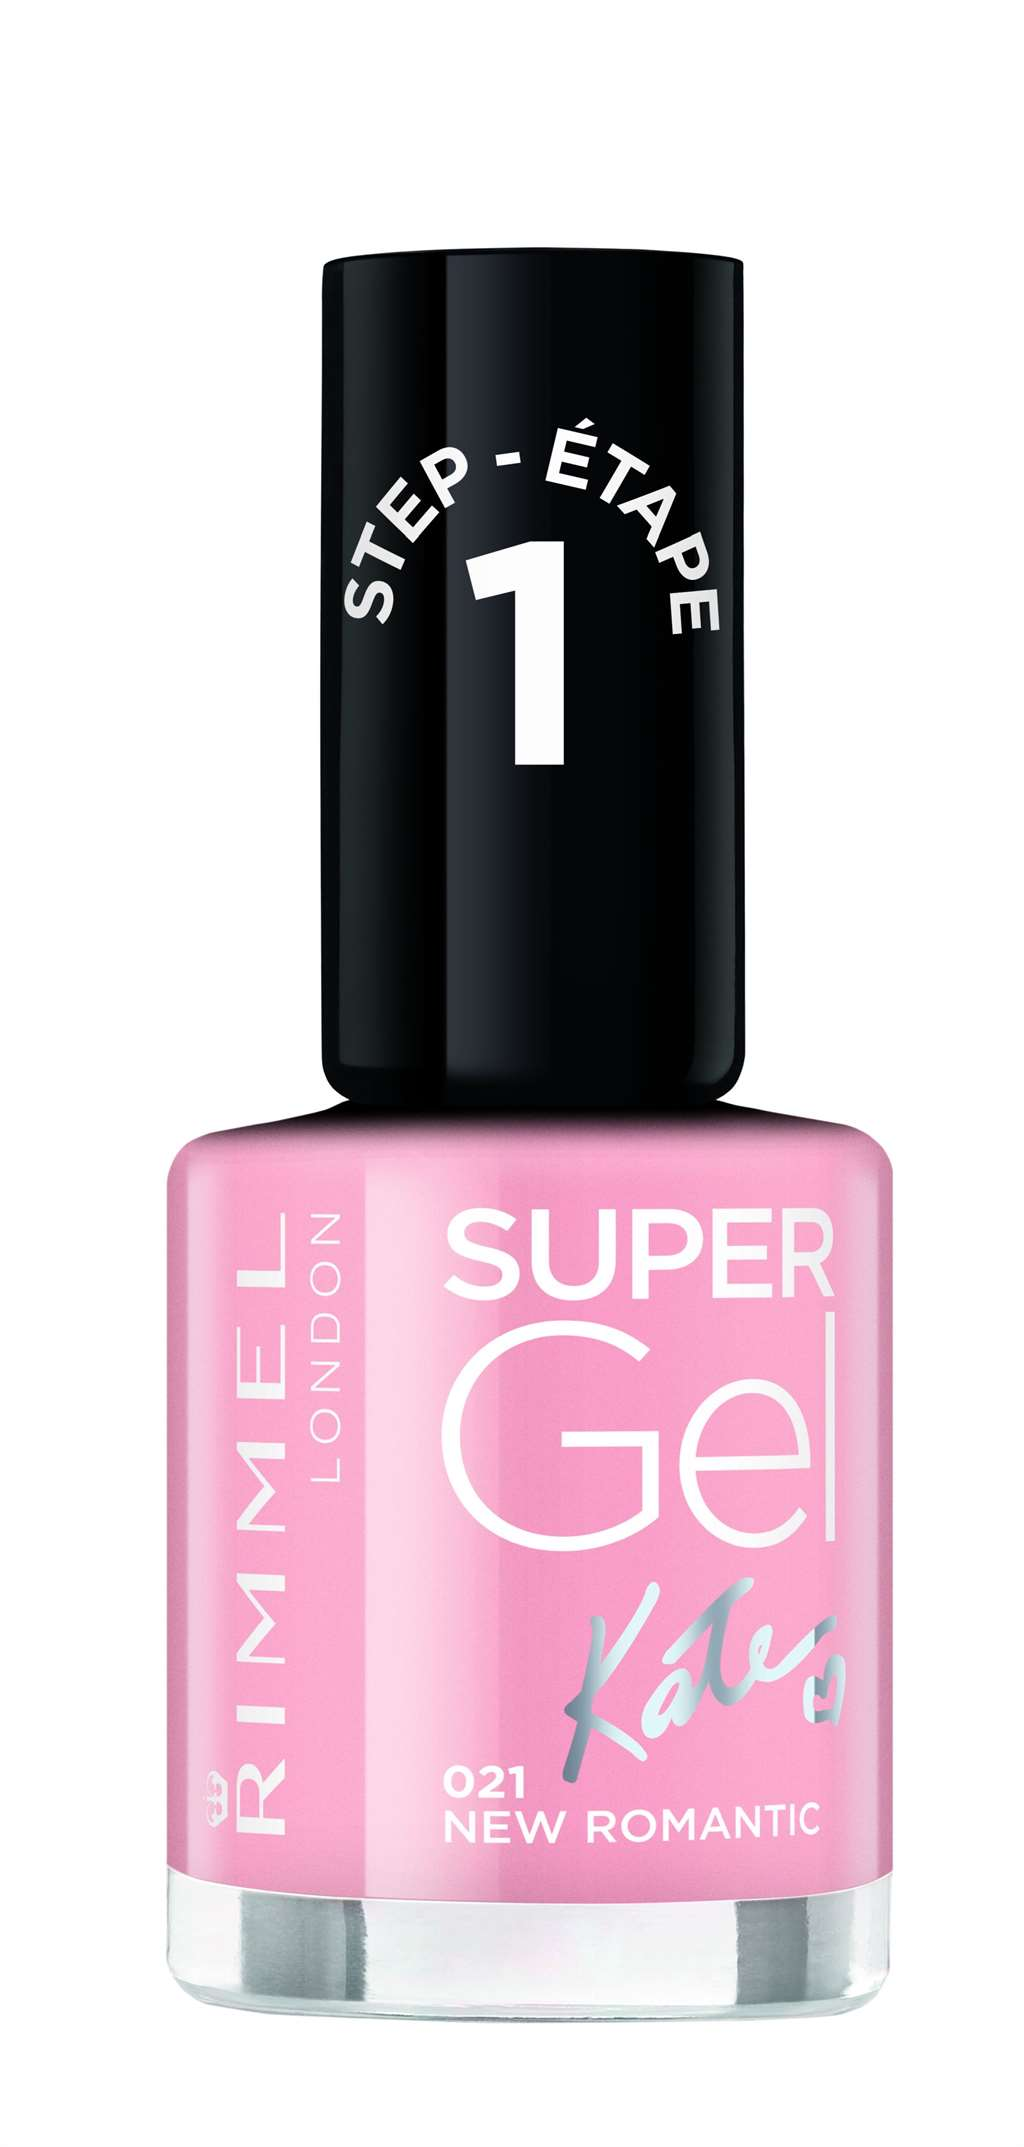 RIMMEL Super Gel Kate 021 New Romantic small